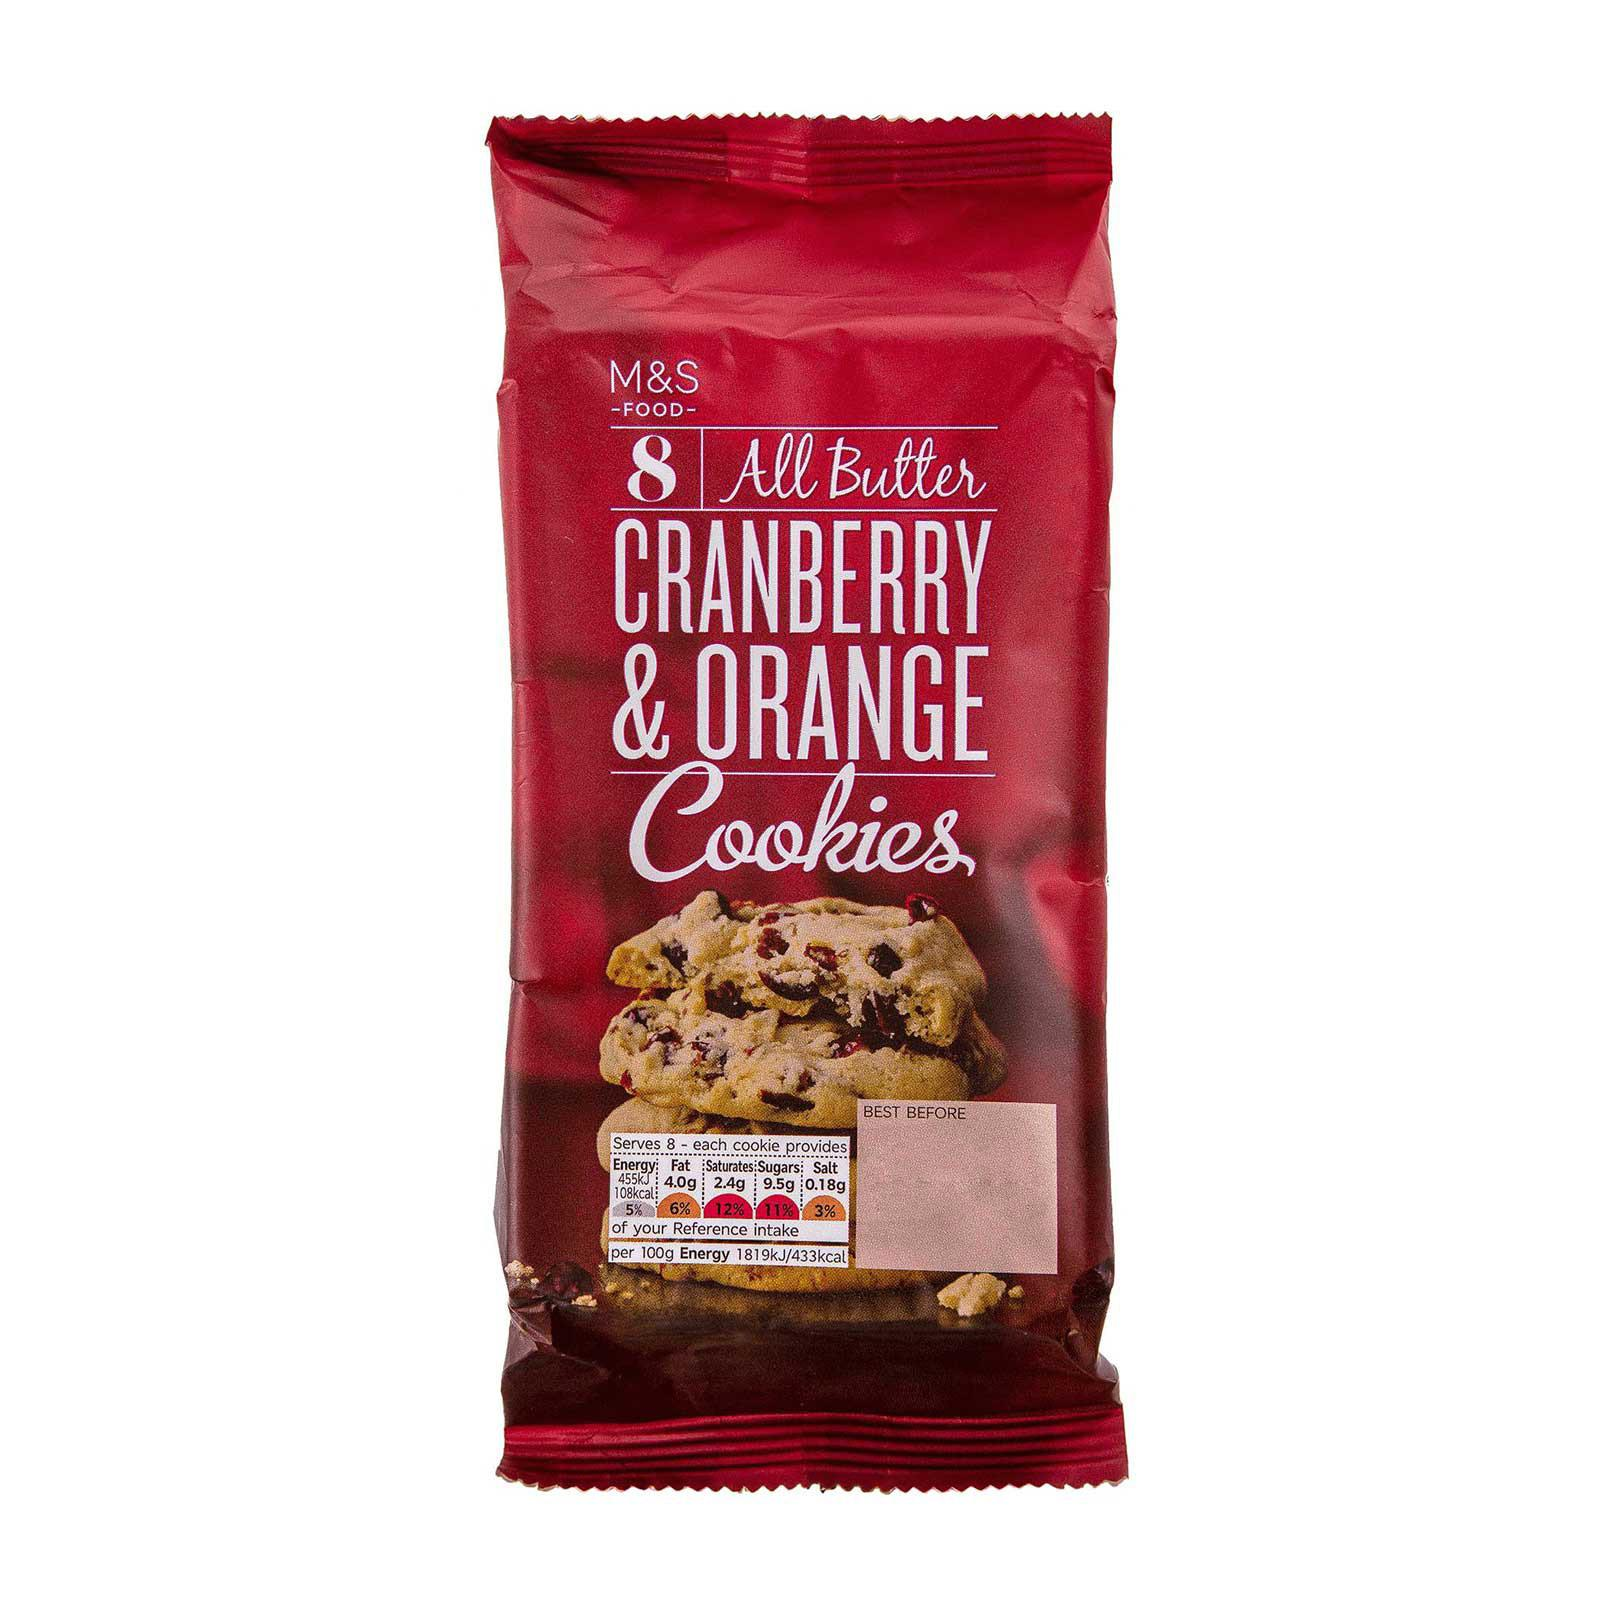 Marks & Spencer All Butter Cranberry and Orange Cookies